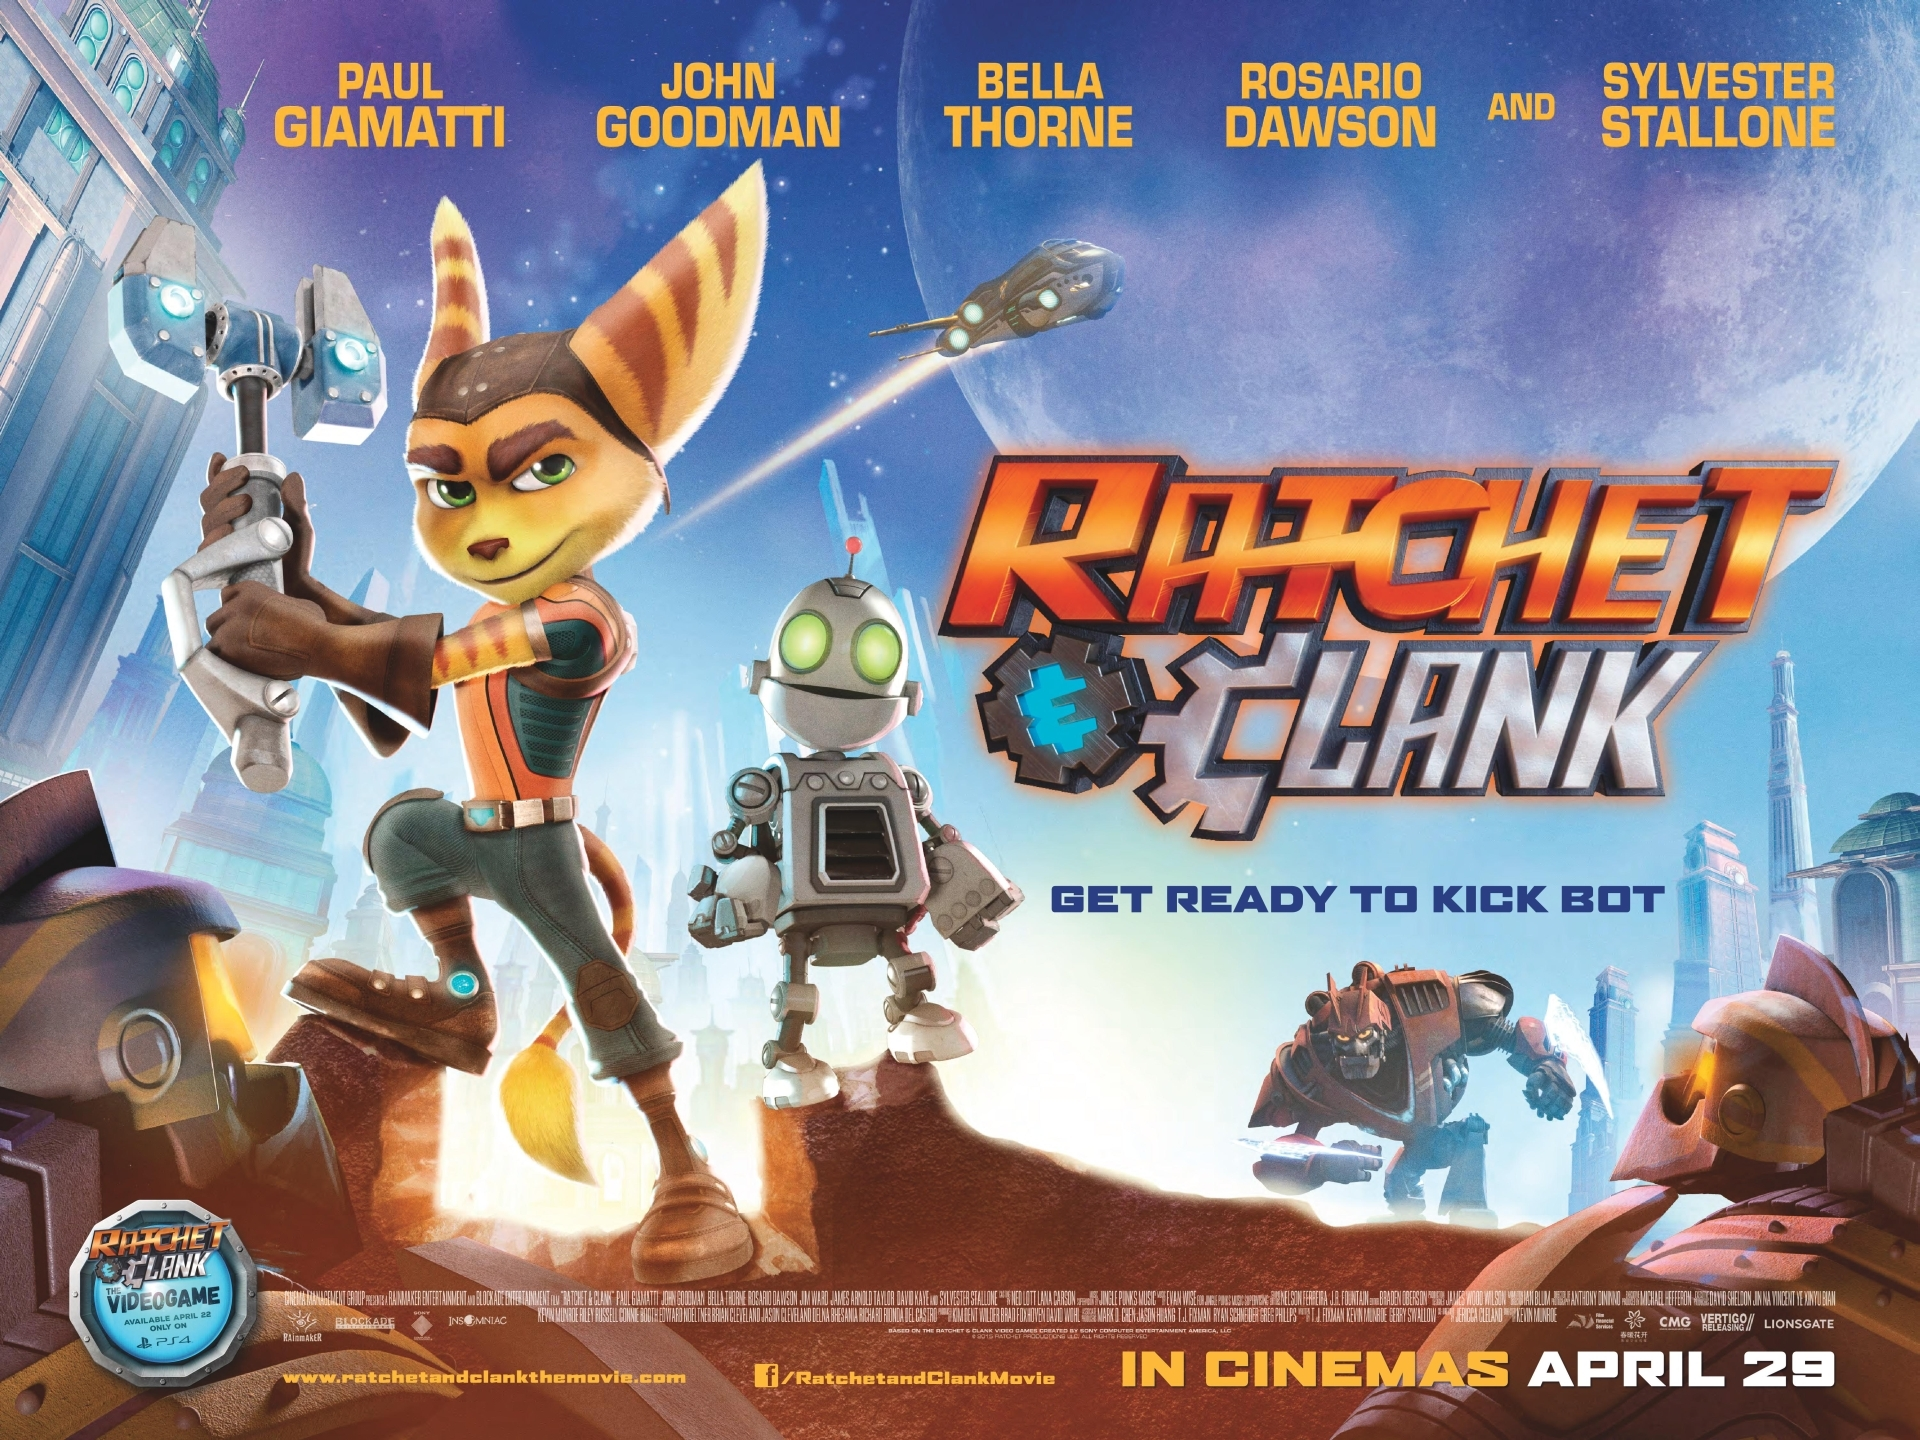 RATCHET & CLANK – Digital Download and DVD Dates